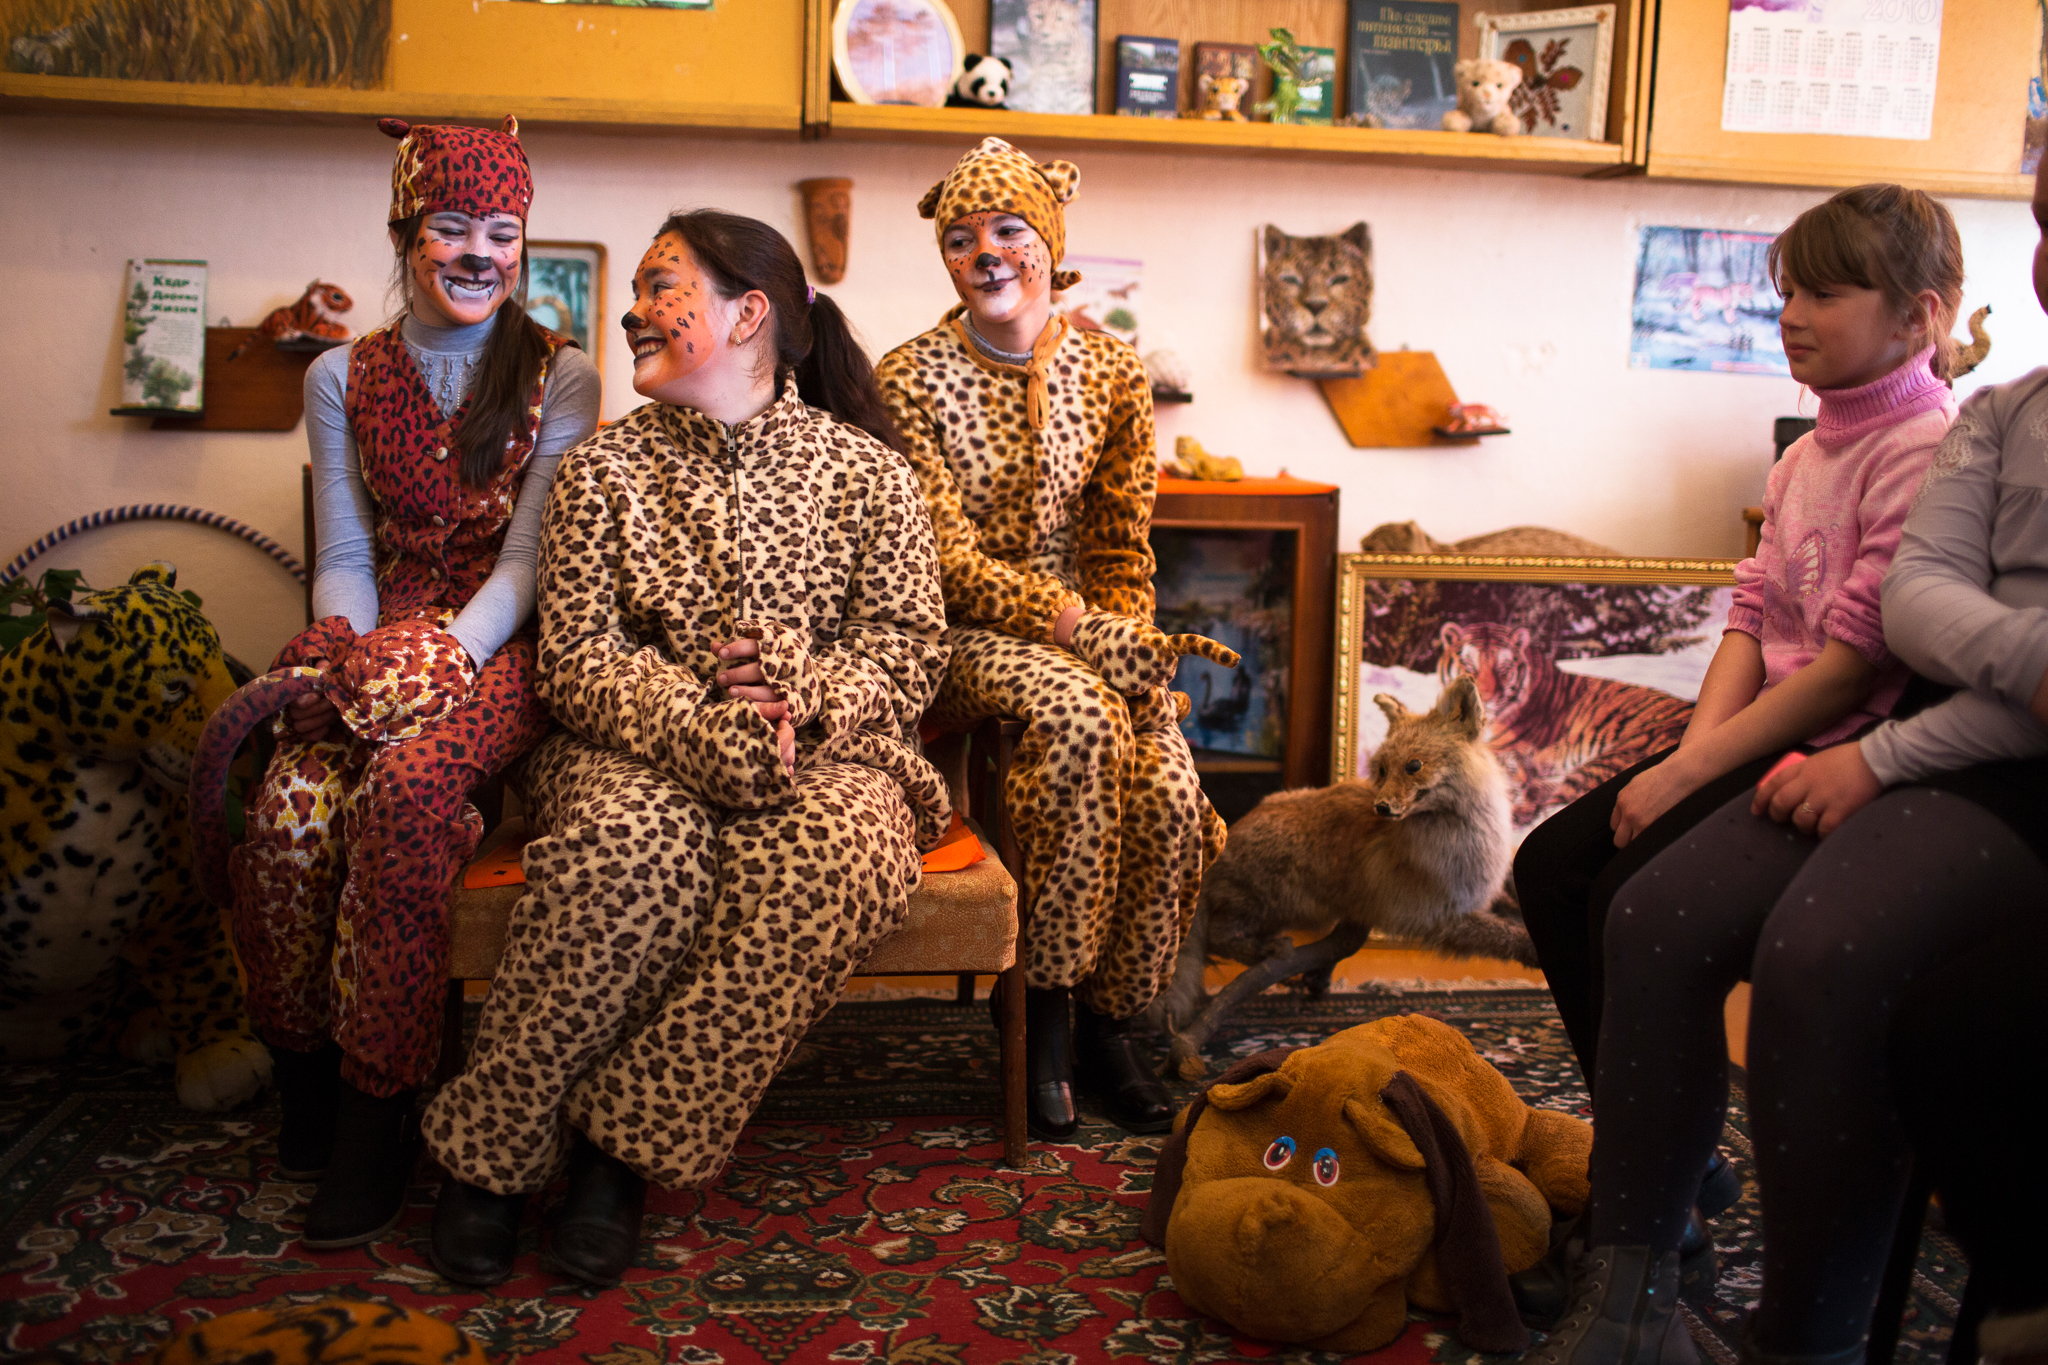 In Slavyanka, just outside the border of Land of the Leopard National Park, high school students Anya Blednova (front left) and two of her friends dress up as leopards once a month and visit grade schools to teach the younger children about the magnificent cats that live nearby.